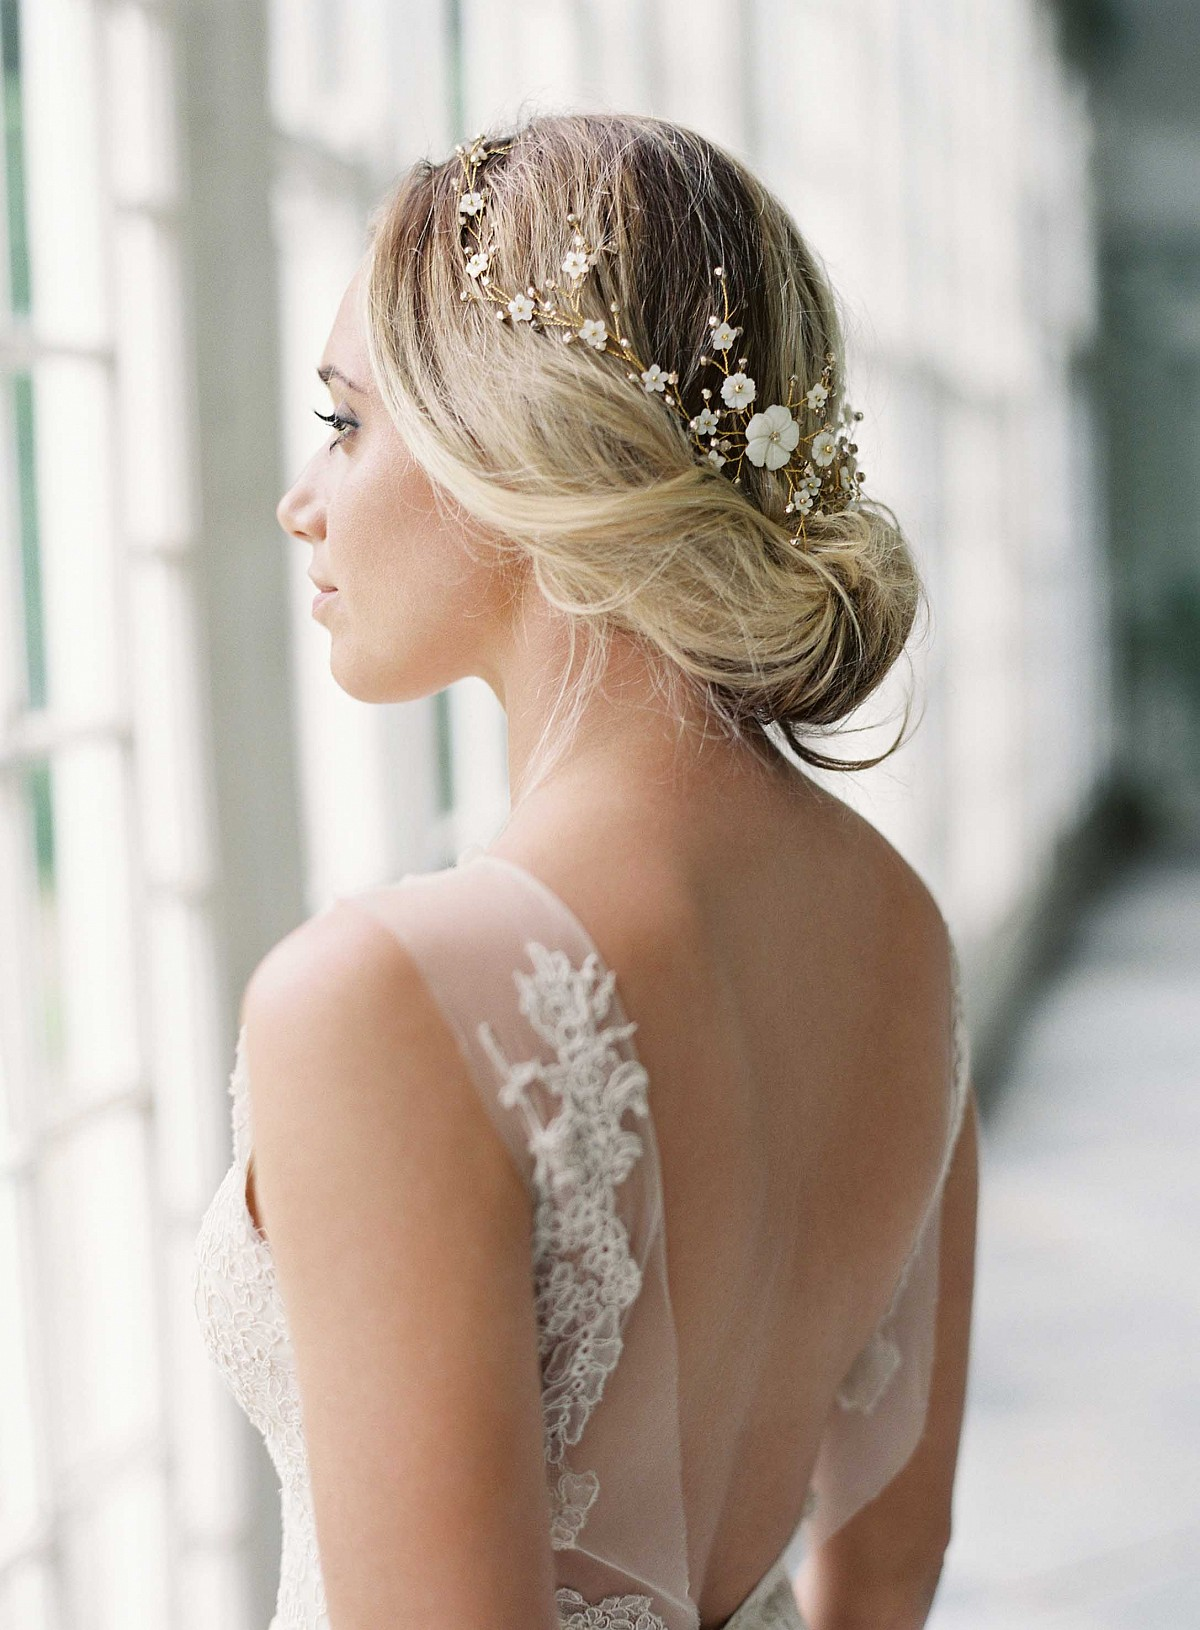 Wedding Gowns for the Fine Art Bride